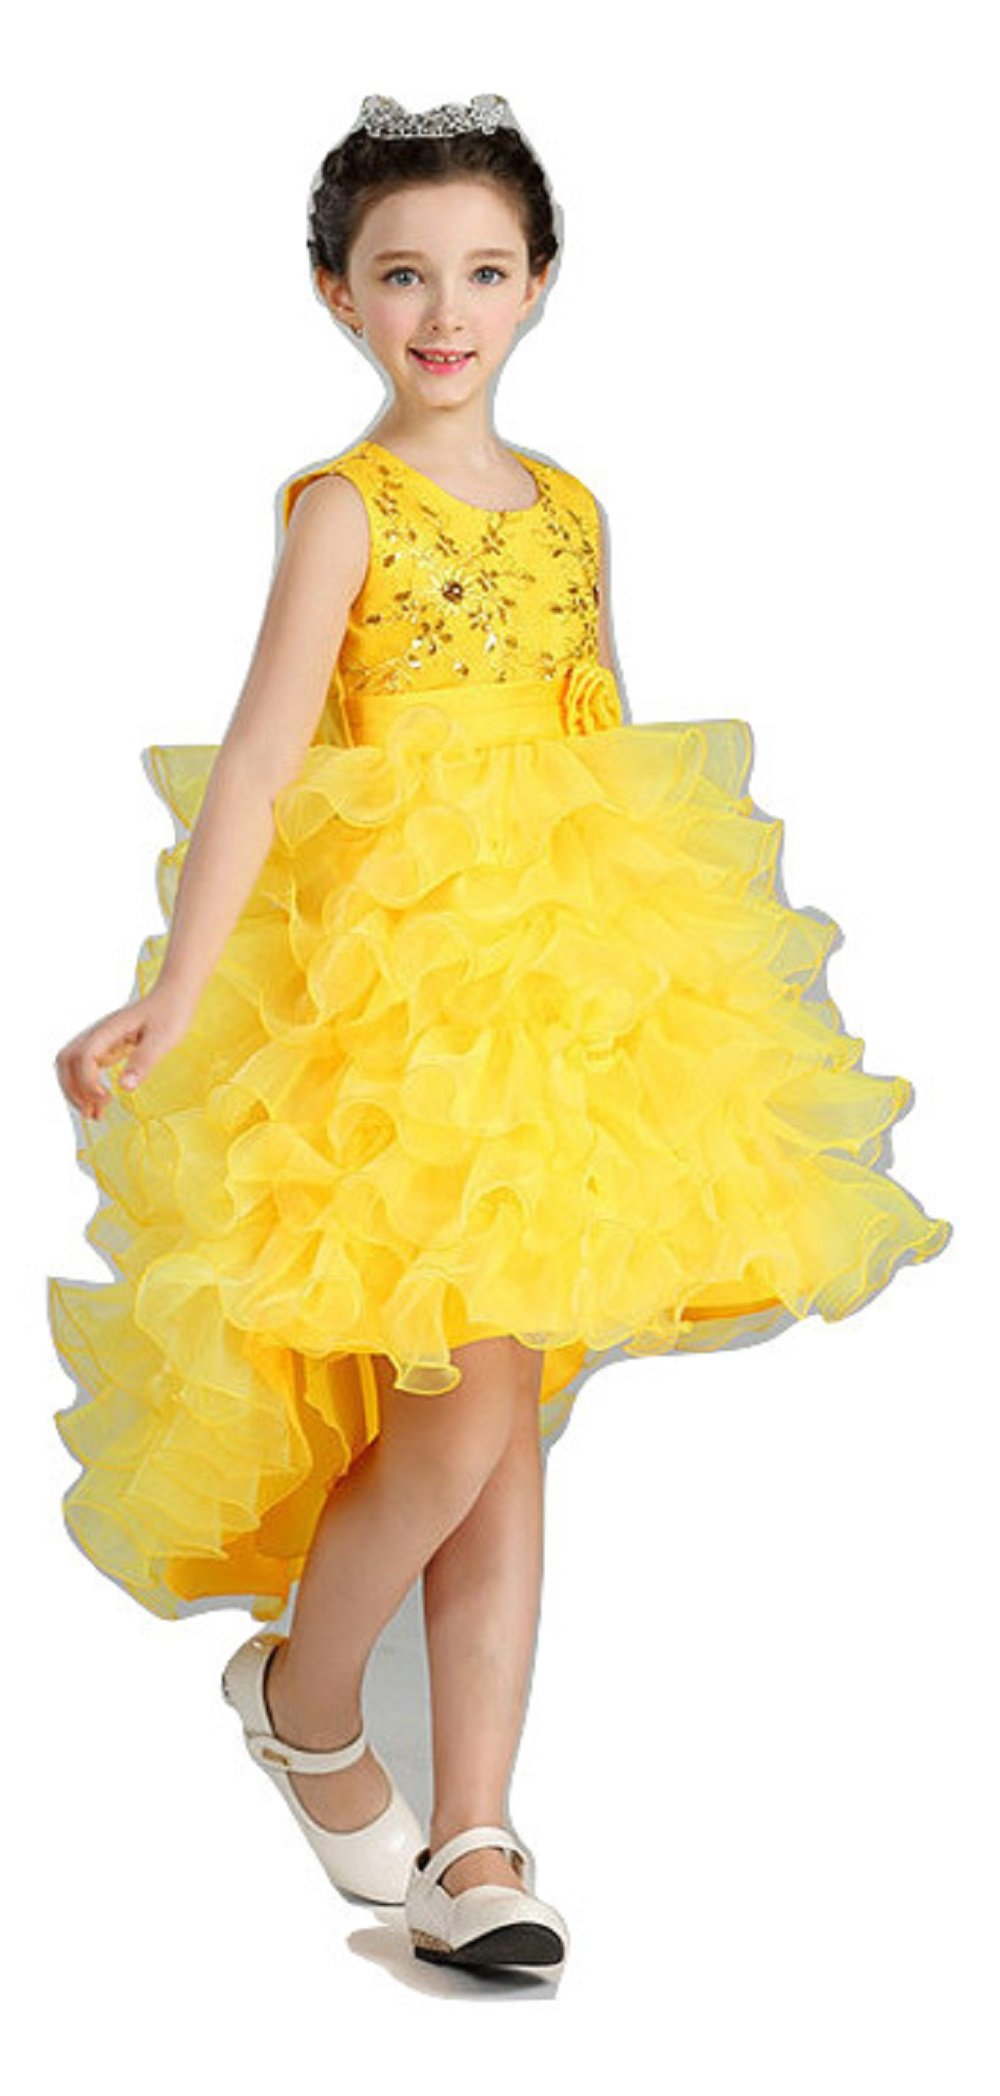 4a58fea8210 Royal Yellow Girls Elegant Tailed Embroidered Dresses Children Ruffled  Layers Long Tail Frocks Birthday Wedding Party